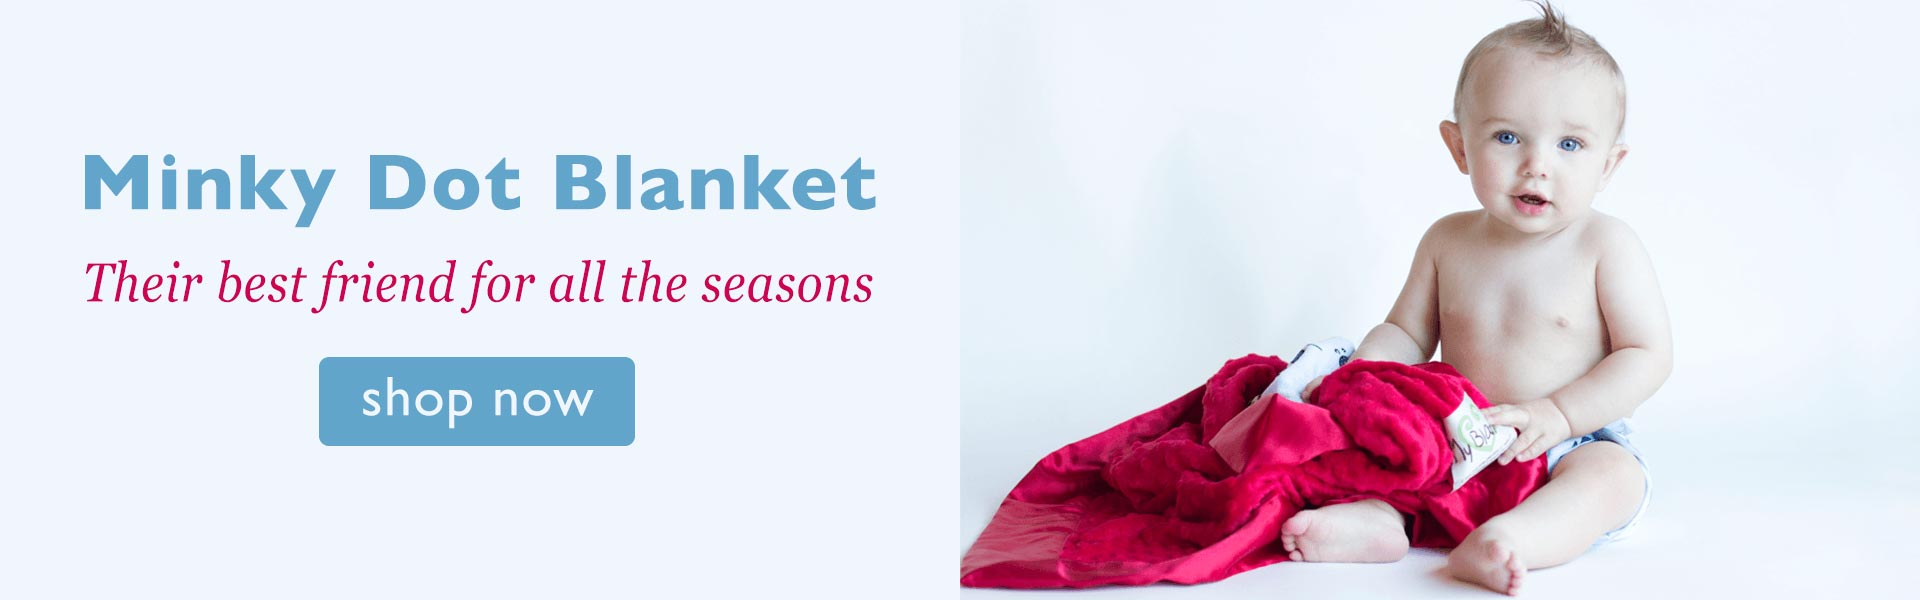 Minky Dot Blanket - Their best friend for all the seasons